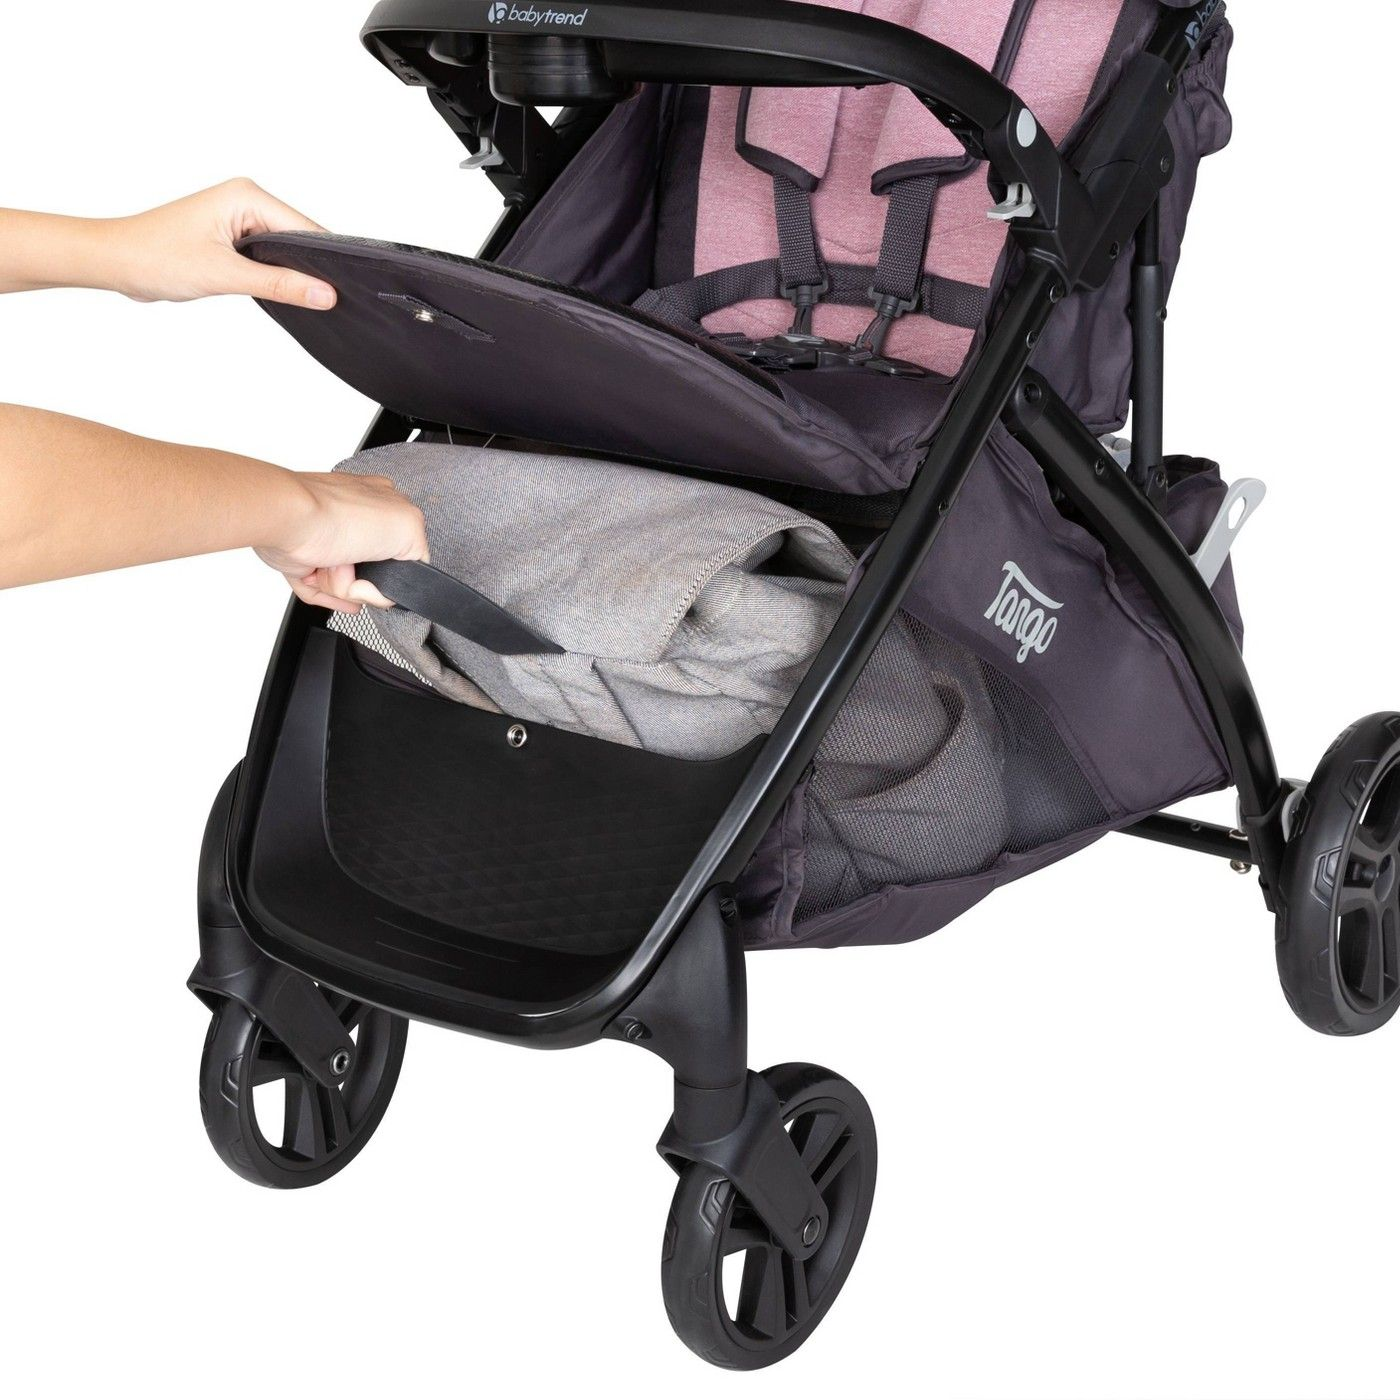 Baby Trend Tango Travel System Affiliate Trend, AD,